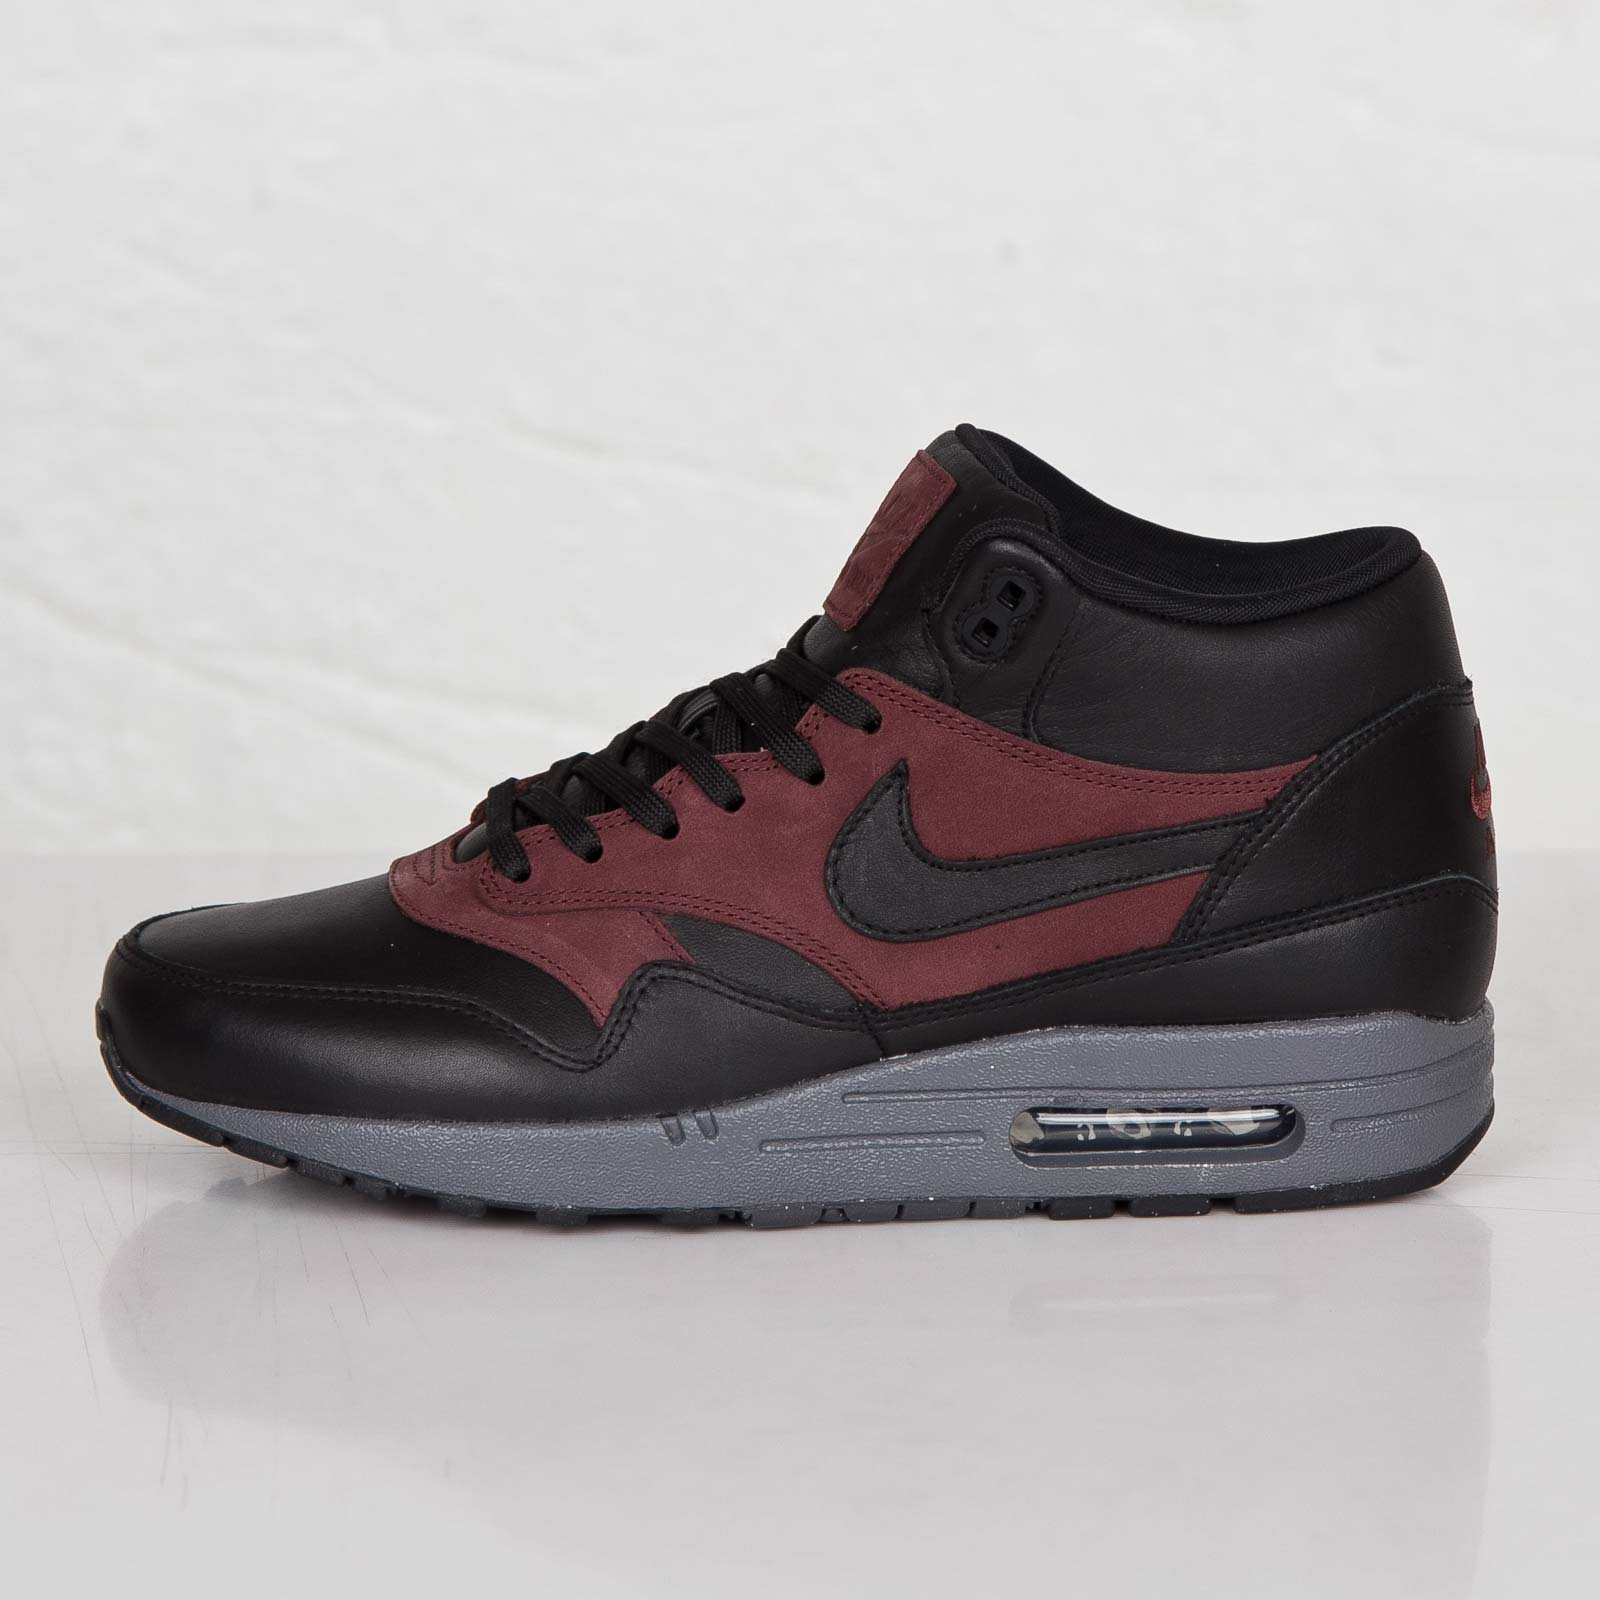 Nike Air Max 1 Mid Deluxe QS 726411 002 Sneakersnstuff I